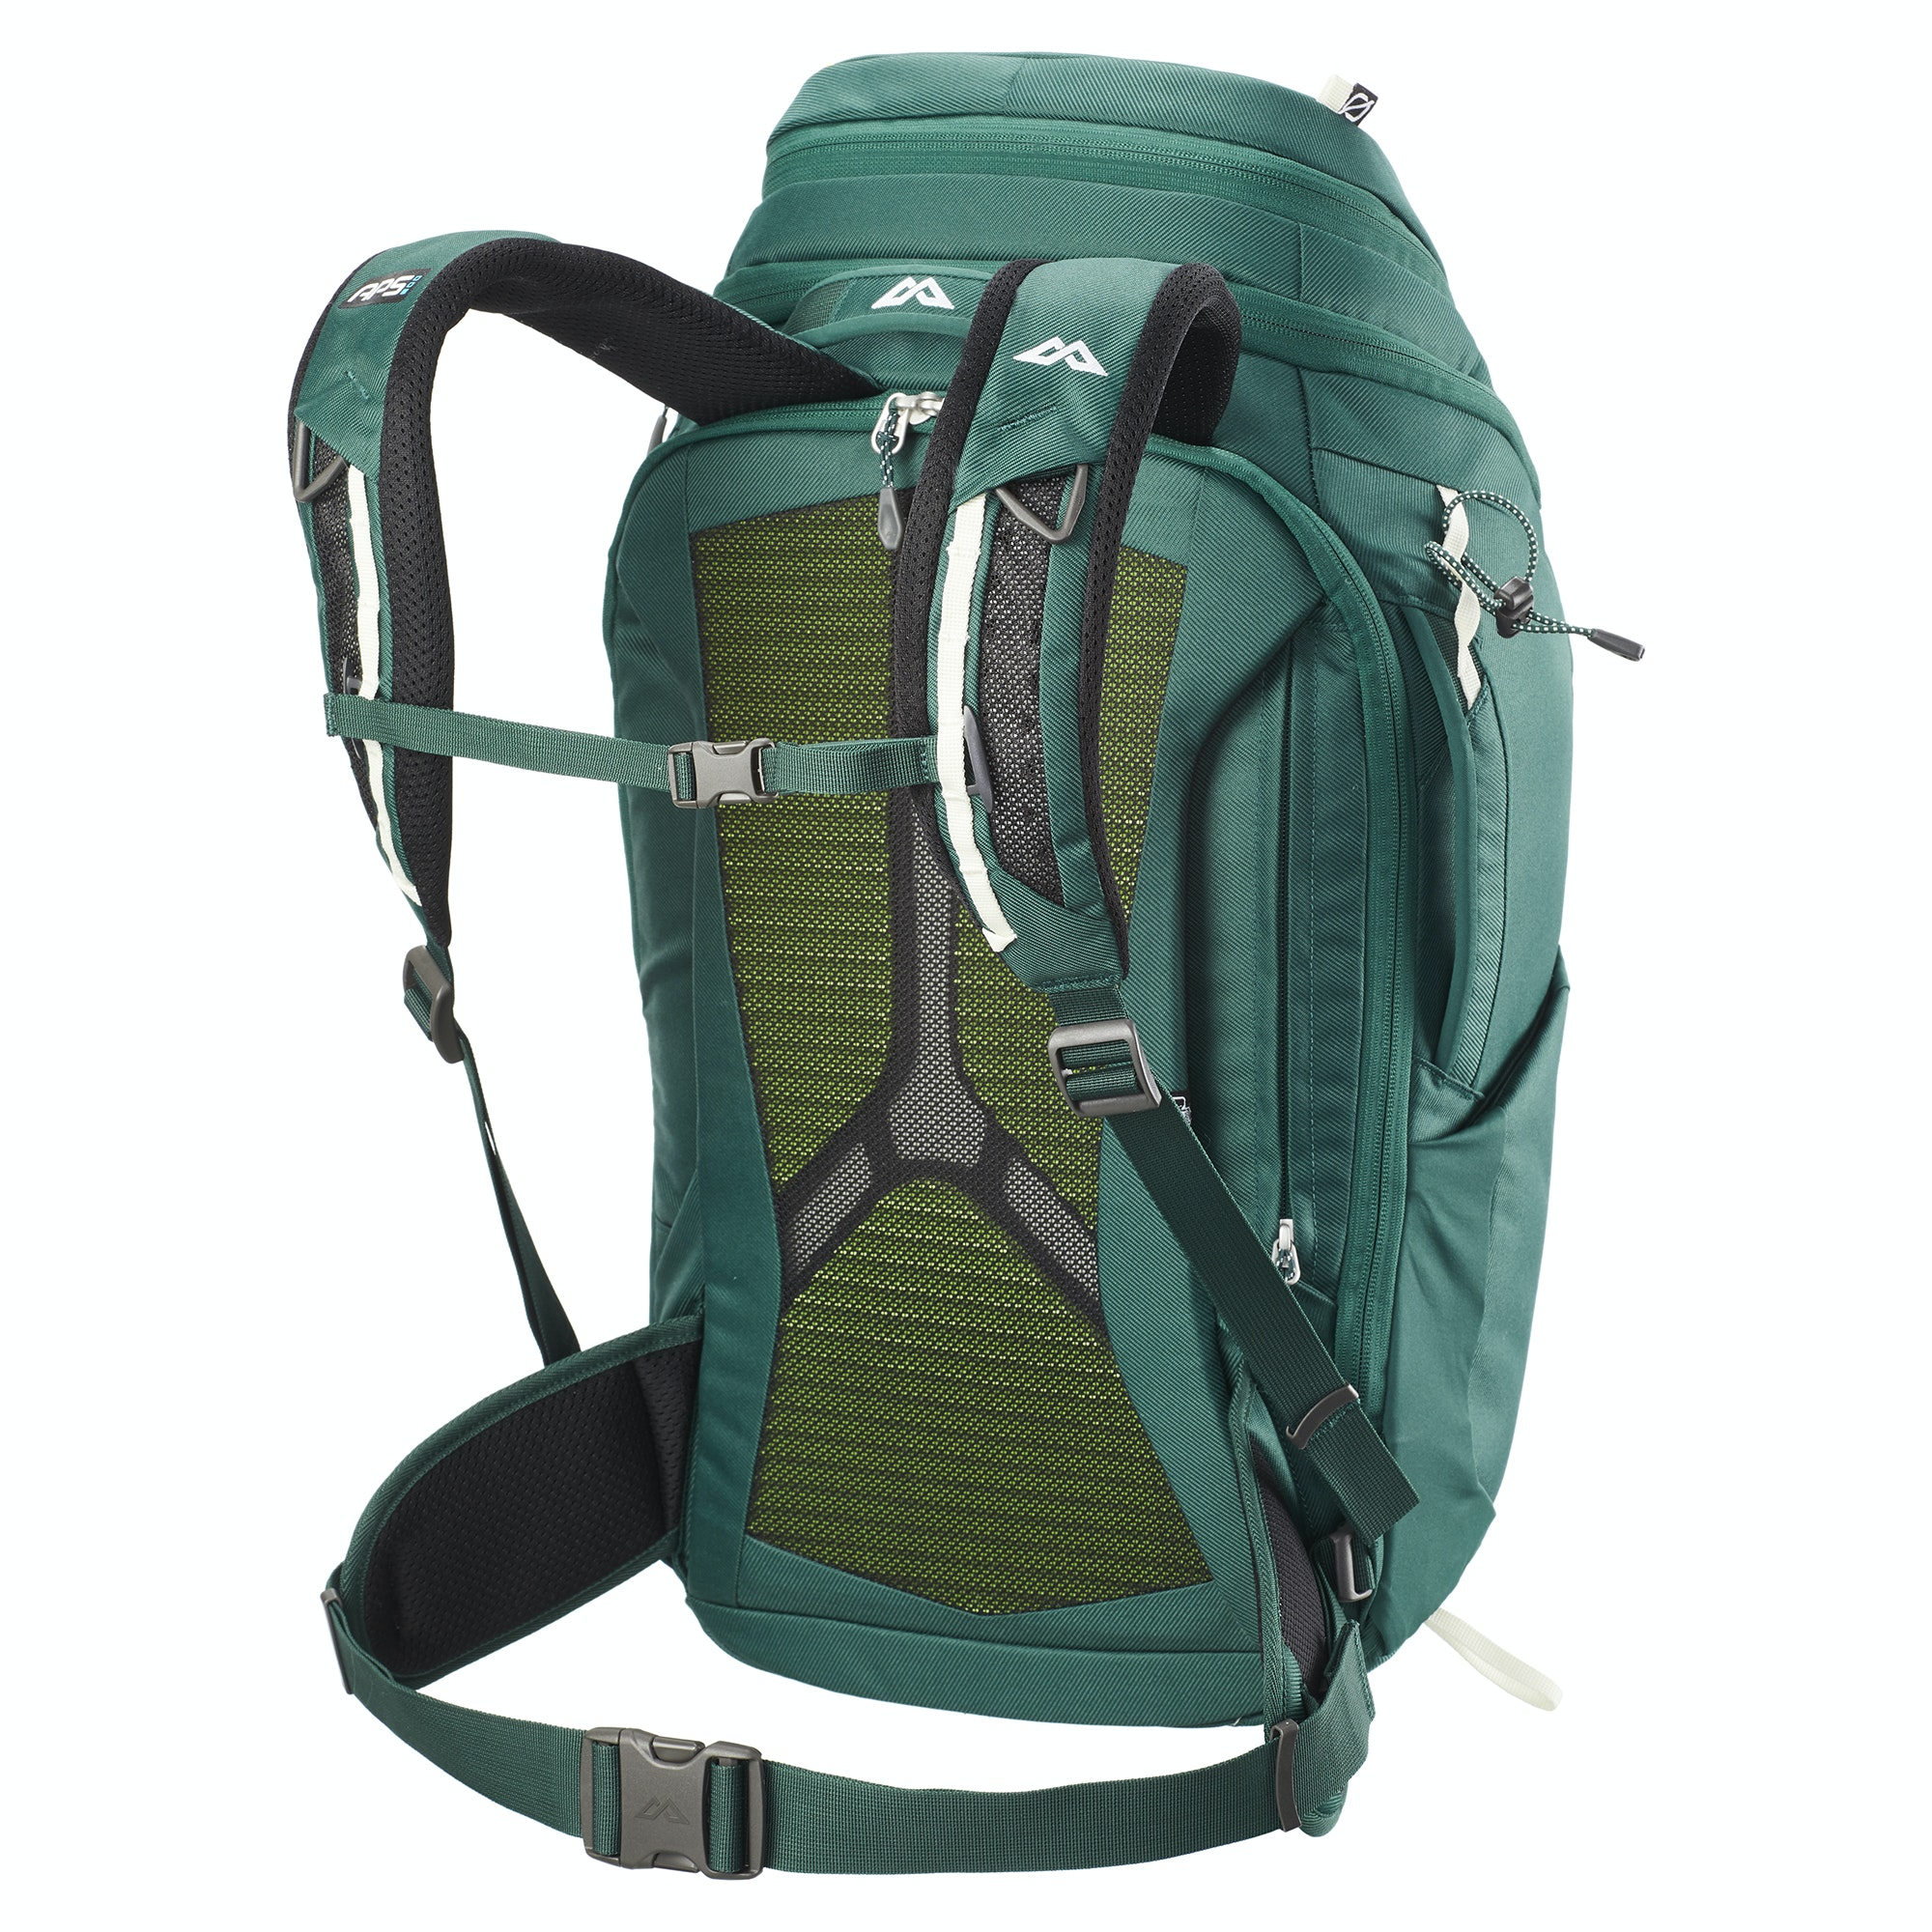 NEW-Kathmandu-Transfer-28L-Commuter-Bag-Laptop-Backpack-Rucksack-Travel-Pack-v3 thumbnail 18